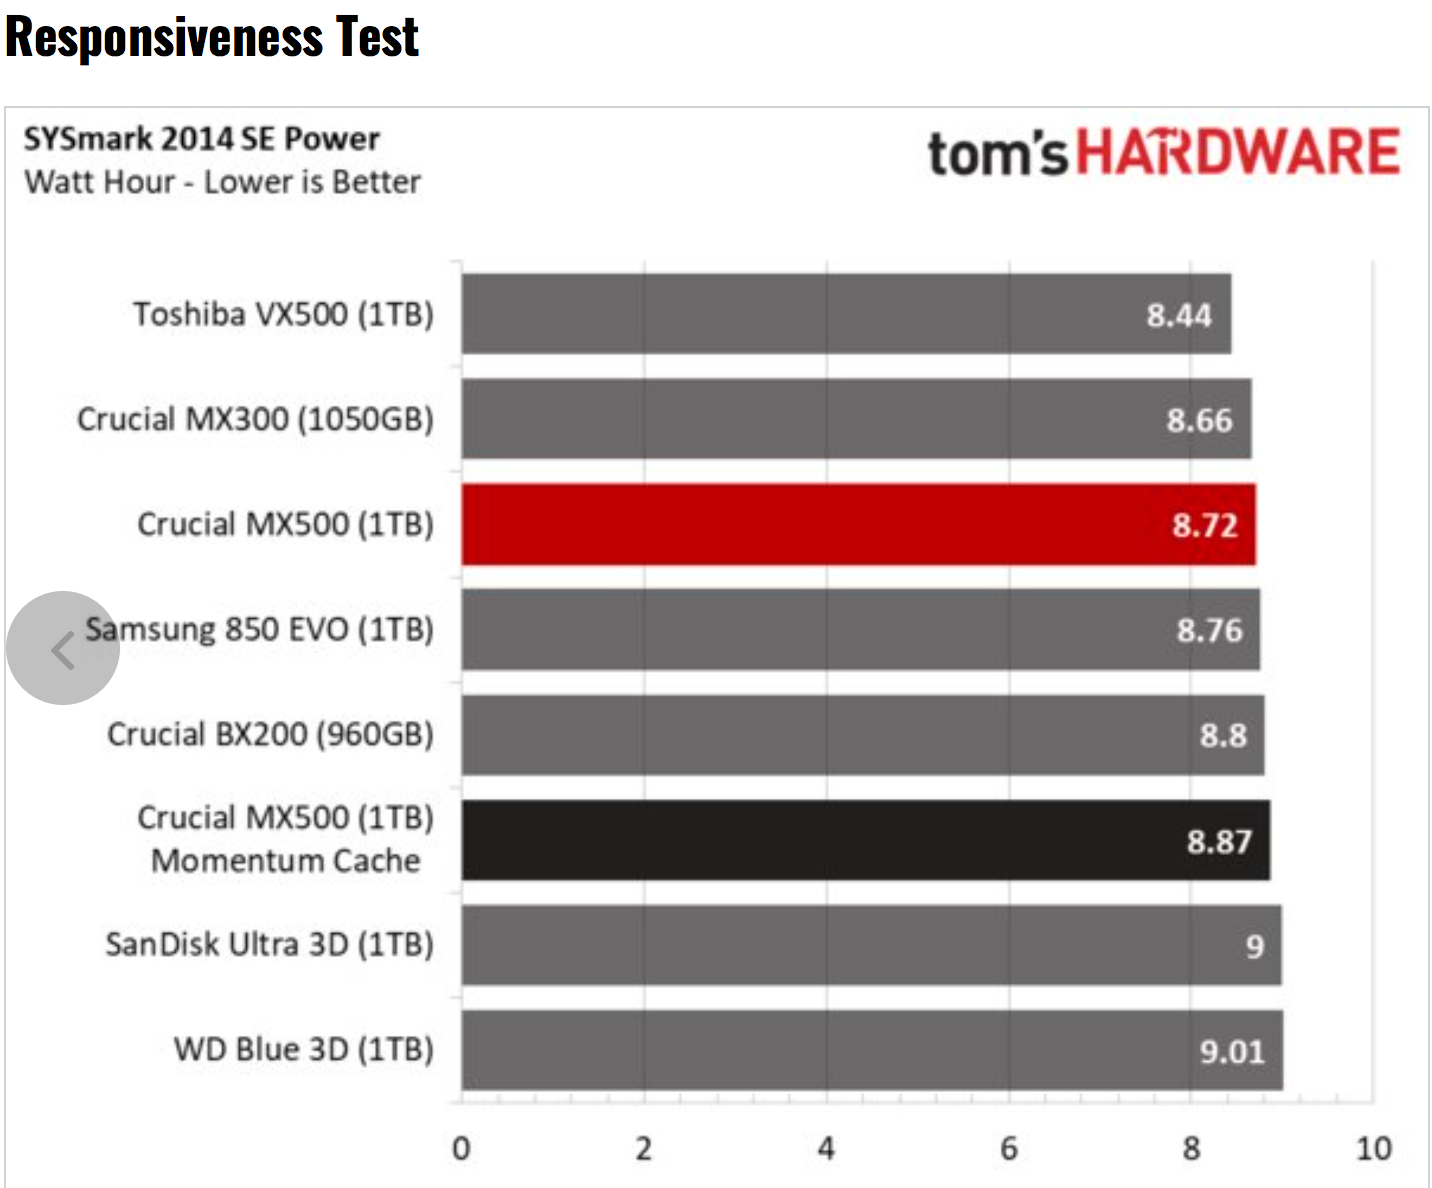 Tom's Hardware – Crucial MX500 SSD Review using BAPCo's SYSmark 2014 SE Responsiveness + Energy Benchmark Test